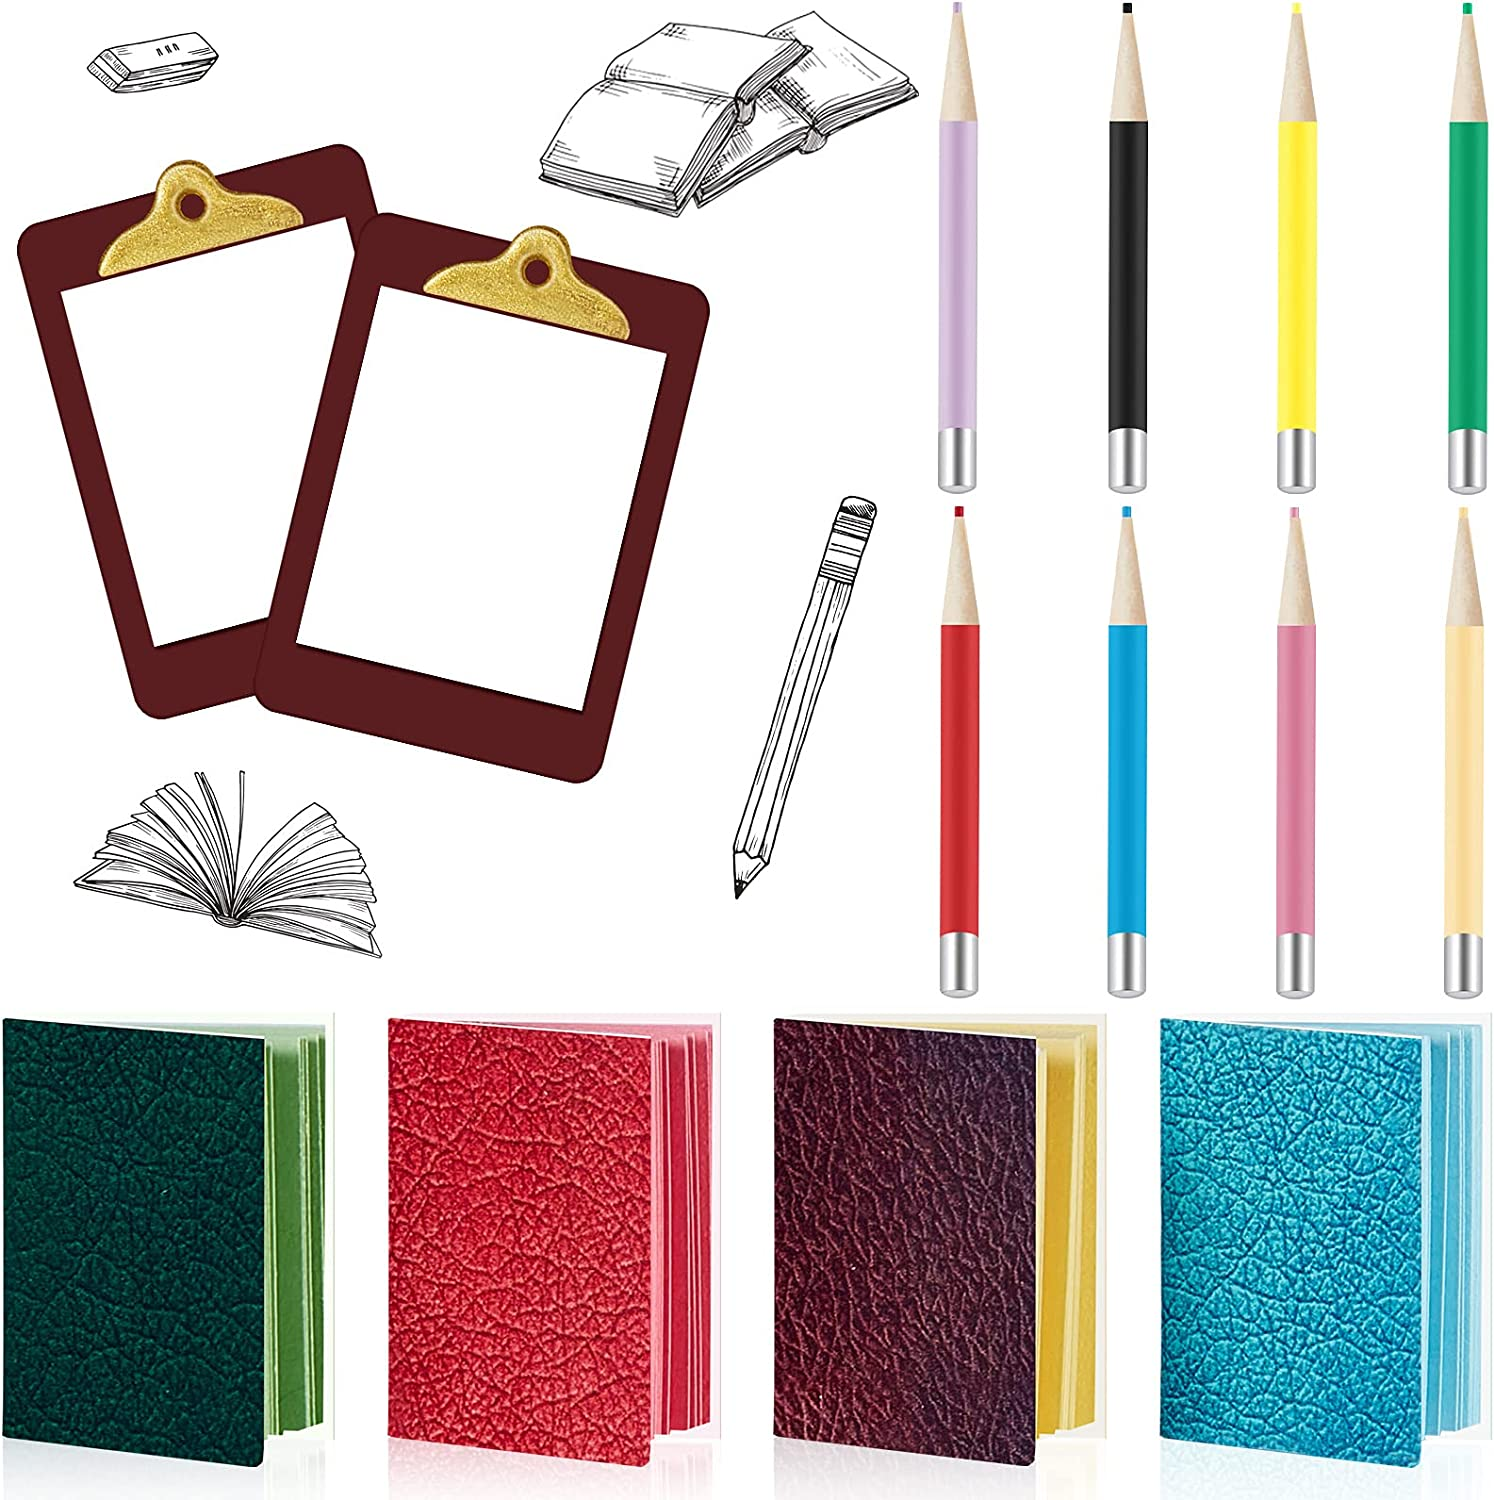 4 Pieces Miniature Book with 8 Pieces Miniature Pencil and 2 Pieces Miniature Clipboard Dollhouse Toy Home Miniature Model DIY Decor Doll House Accessories Coloring House Playset for Collectors